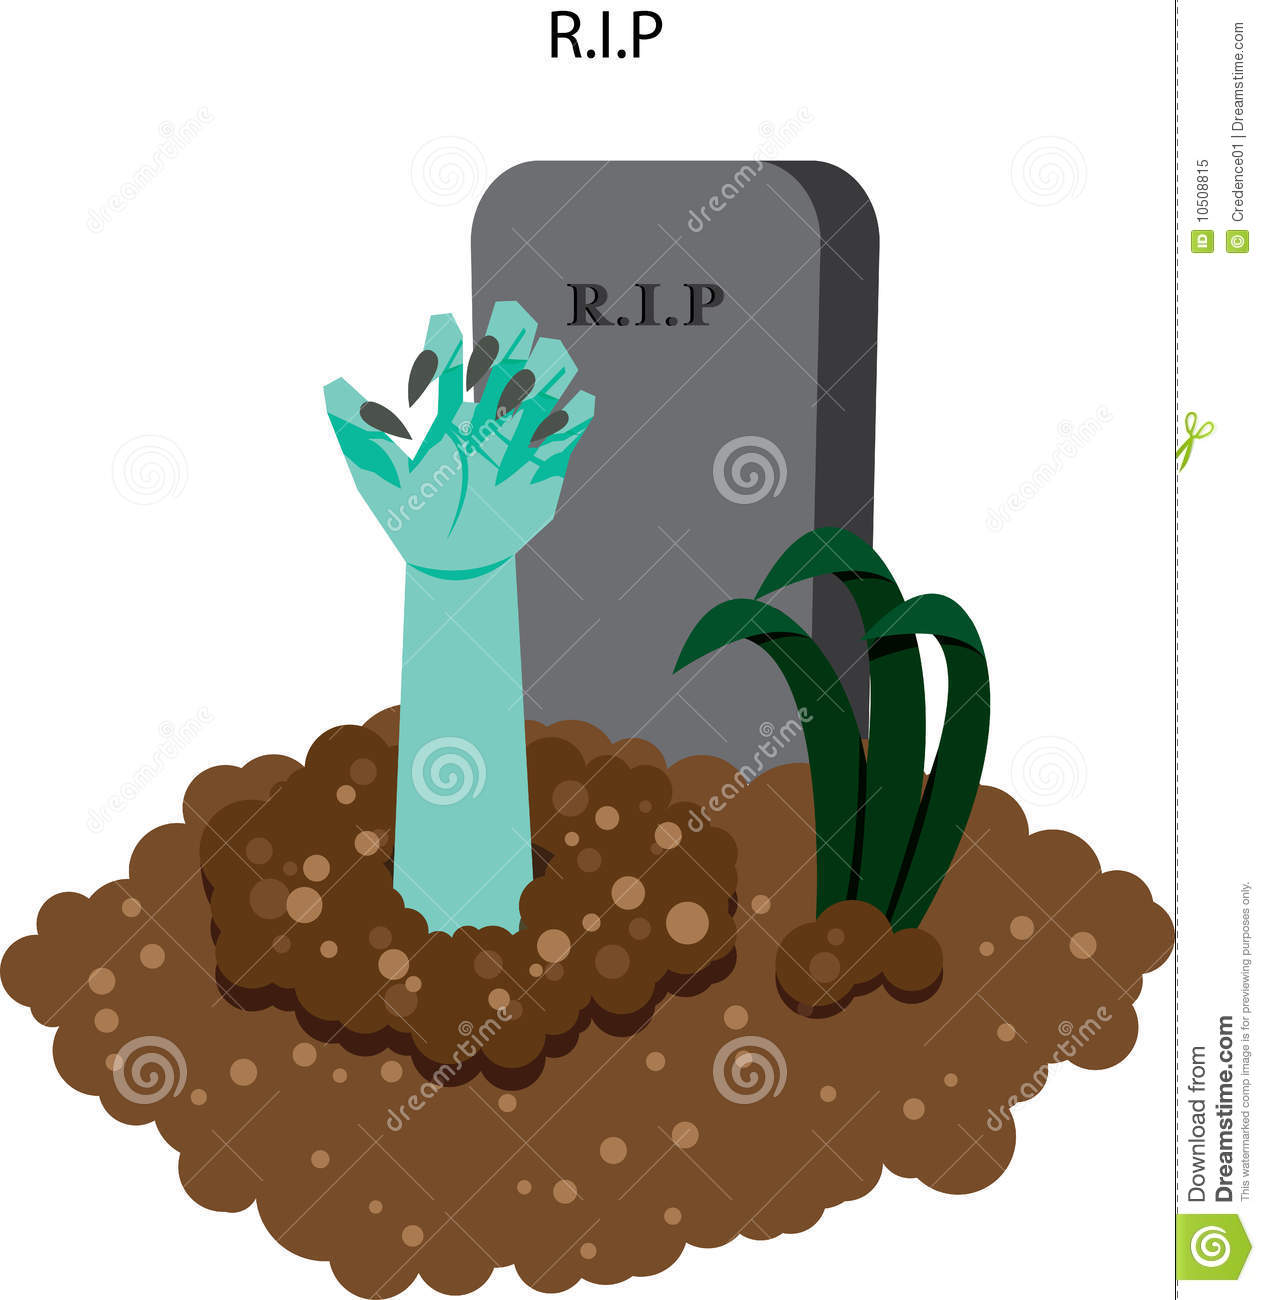 rest in peace rip stock image image of burial lights 34951107